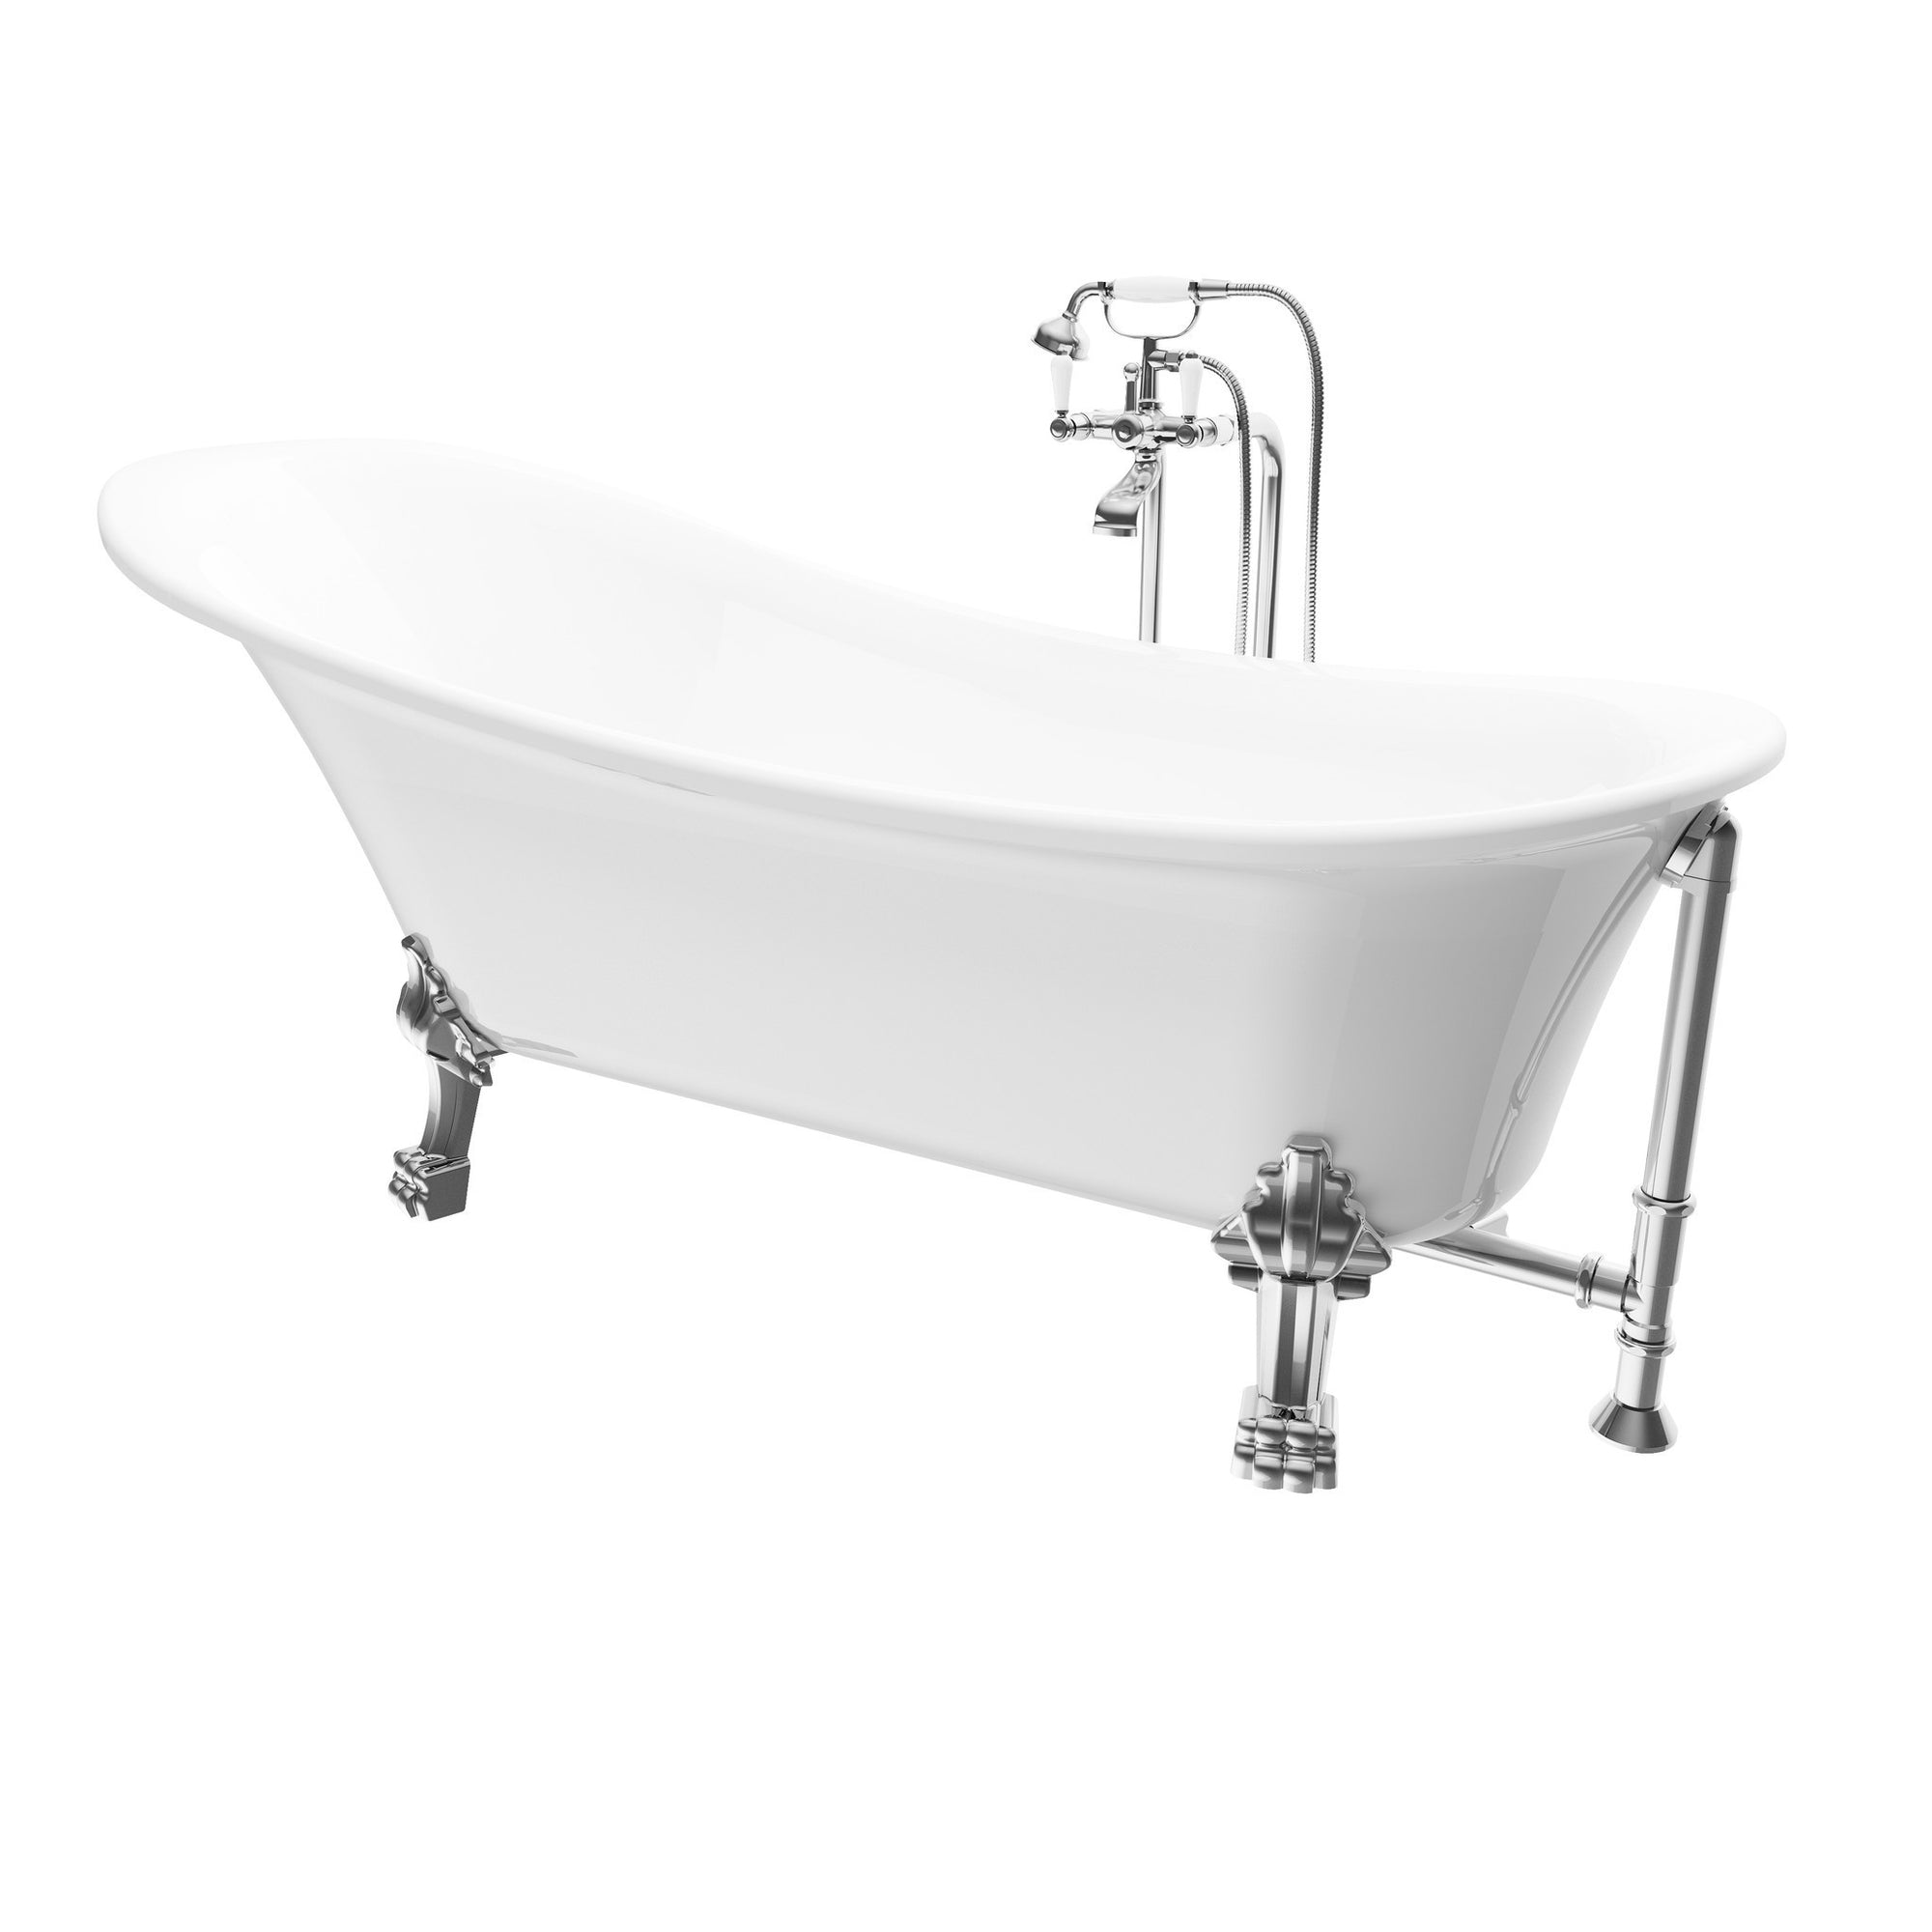 A E Bath And Shower Dorya Acrylic 69 Premium All In One Clawfoot Freestanding Tub Kit